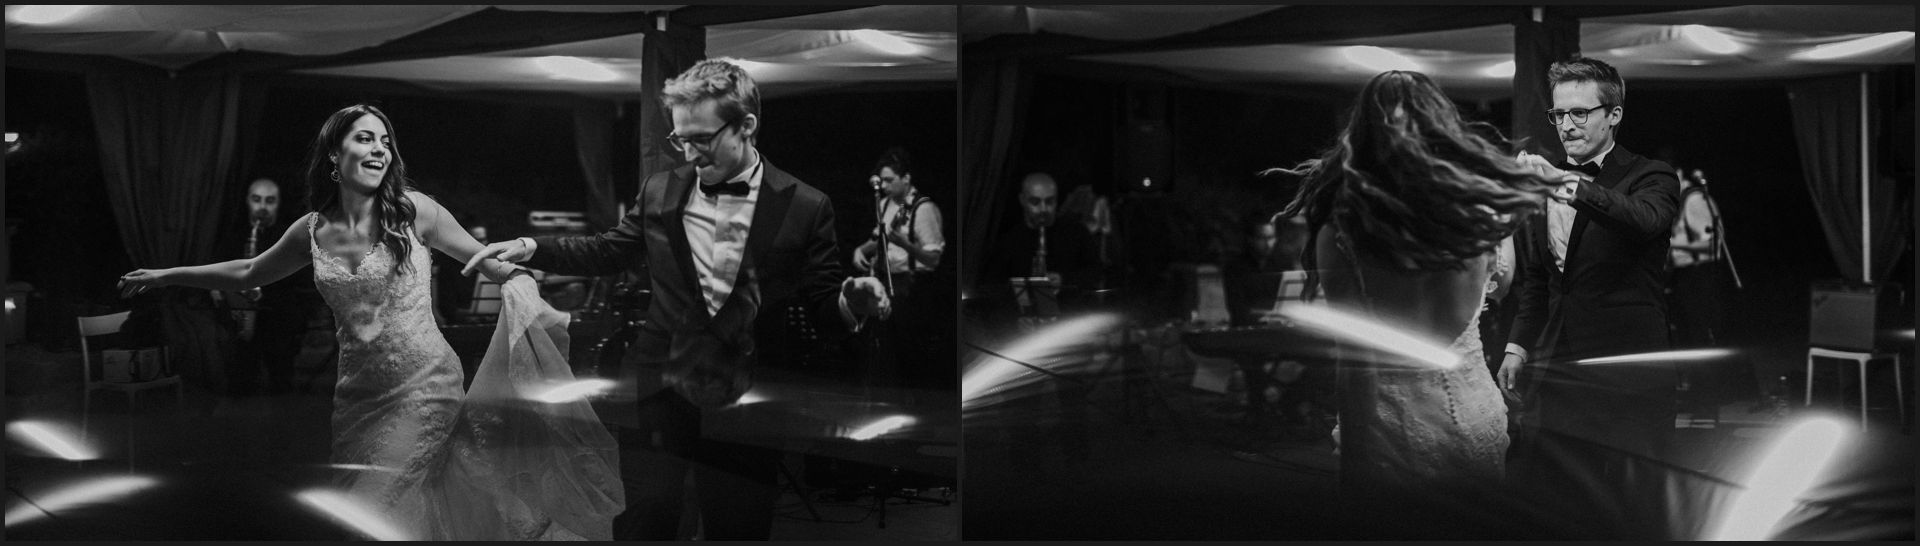 first dance, bride, groom, wedding, umbria, nikis resort, black and white